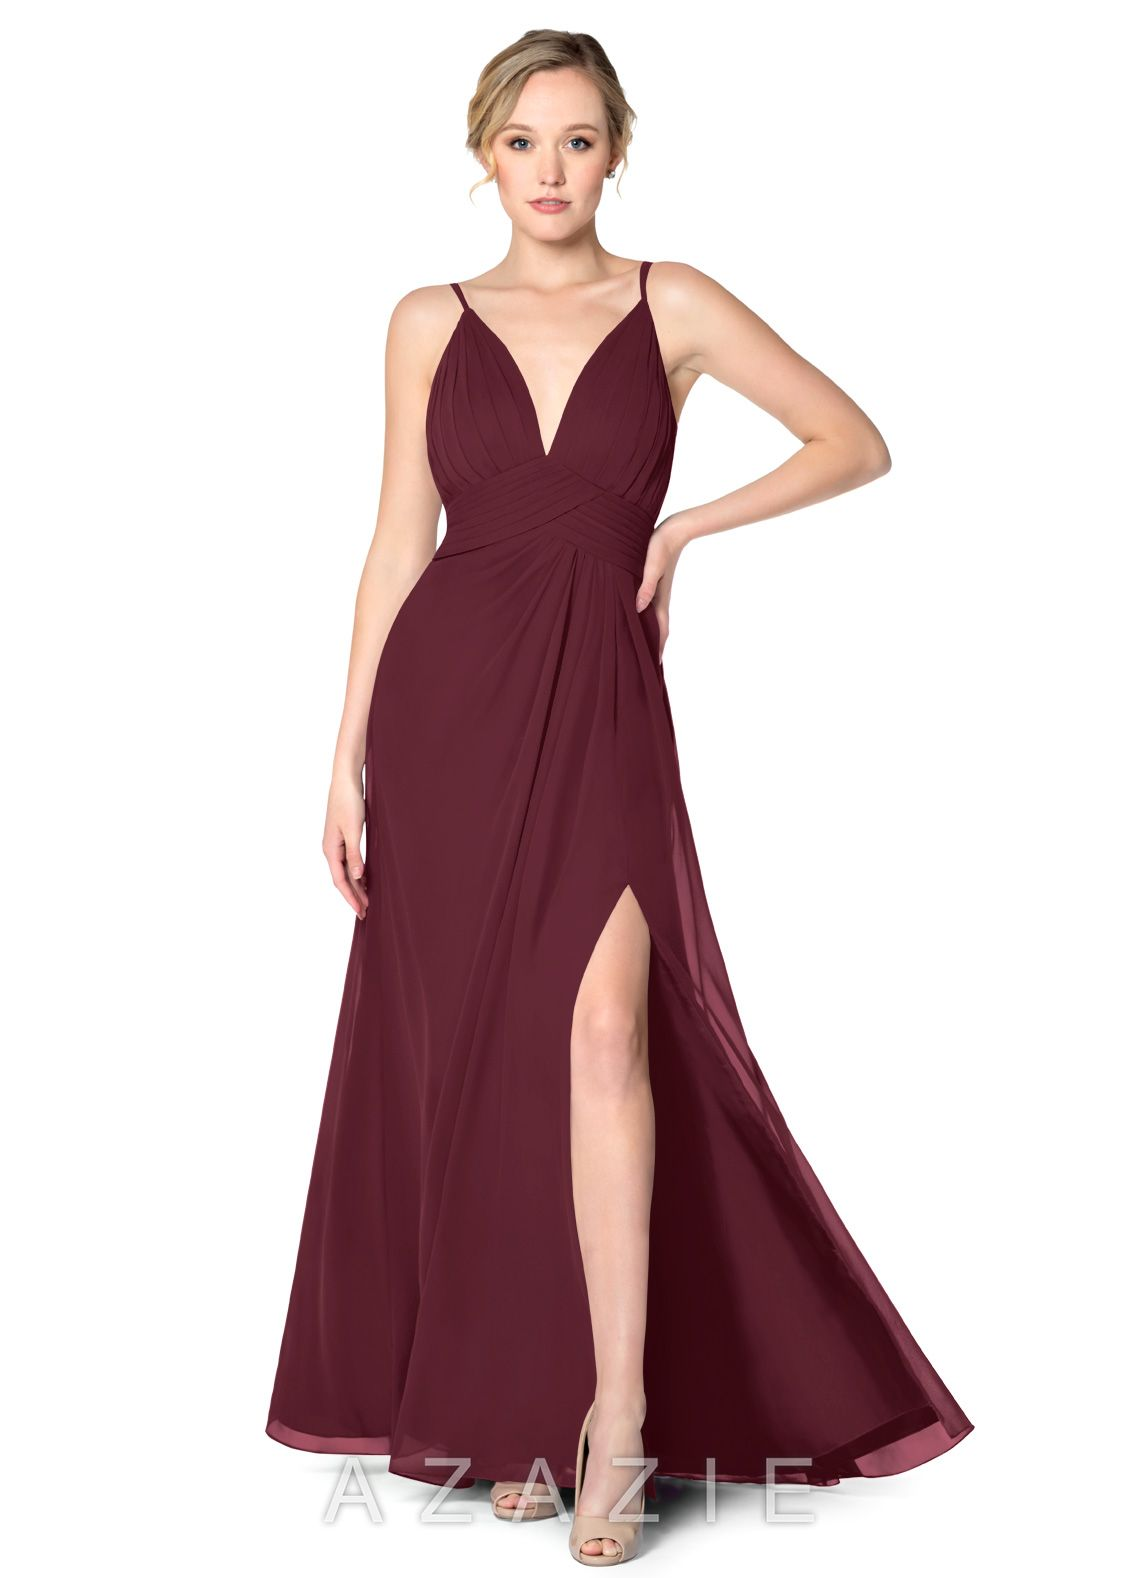 1a21c167add95 Home · Bridesmaid Dresses; Azazie Maren Allure. Azazie Maren Allure; Azazie  Maren Allure; Azazie Maren Allure. Azazie Maren Allure. Loading zoom